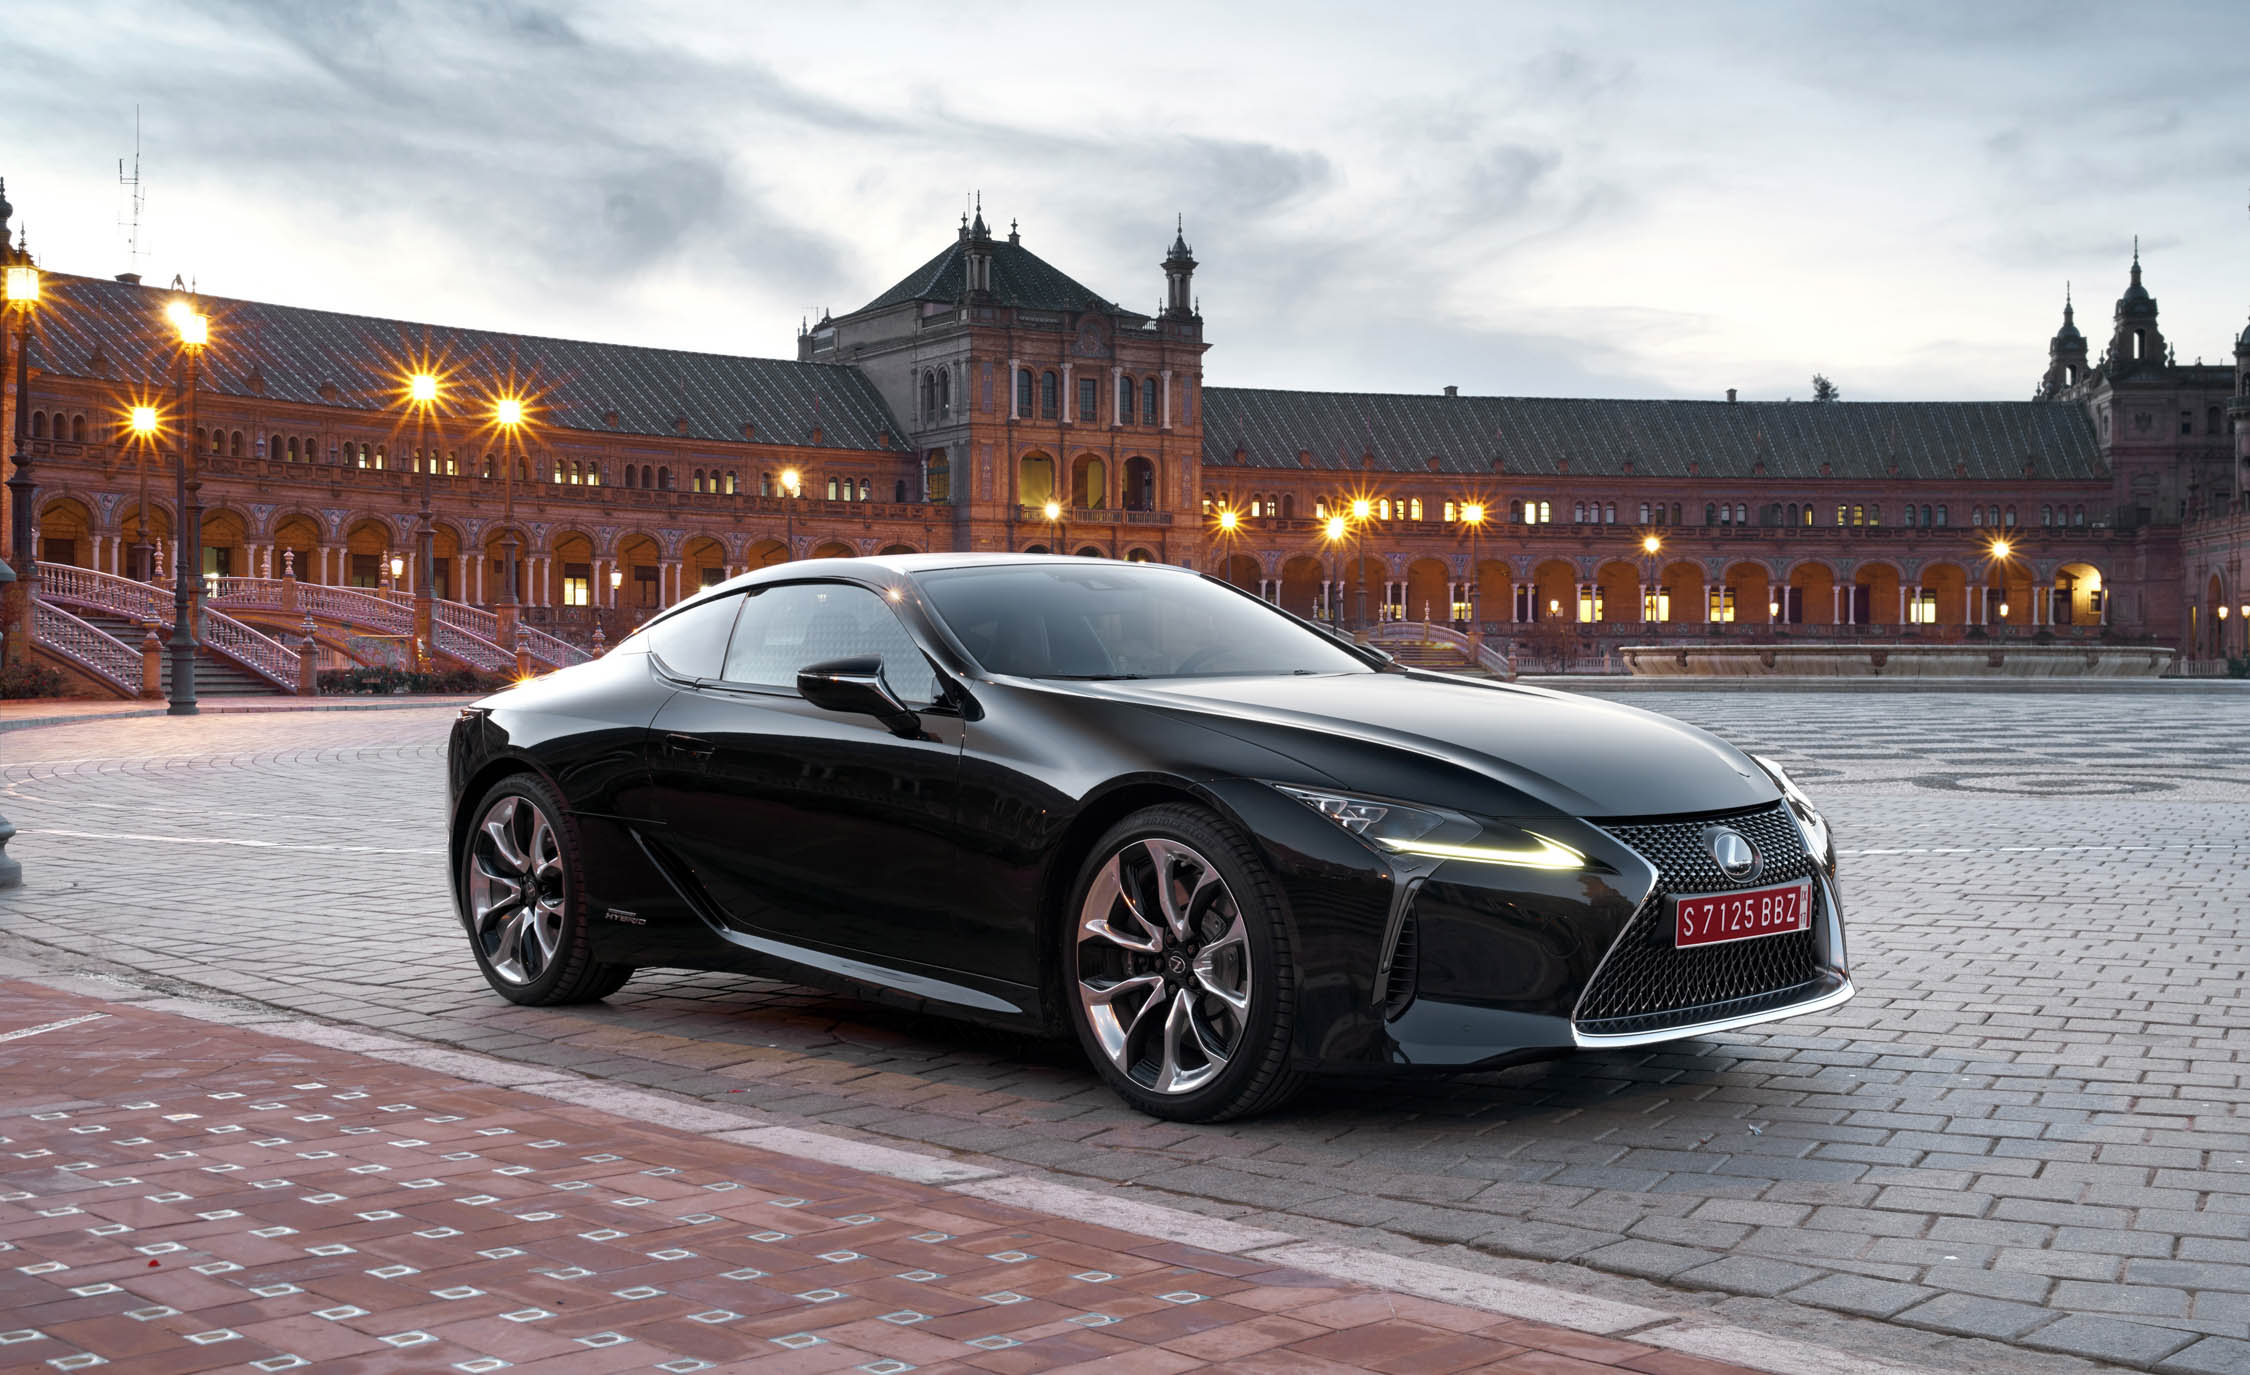 2018 Lexus Lc 500h Black Exterior (Photo 39 of 84)